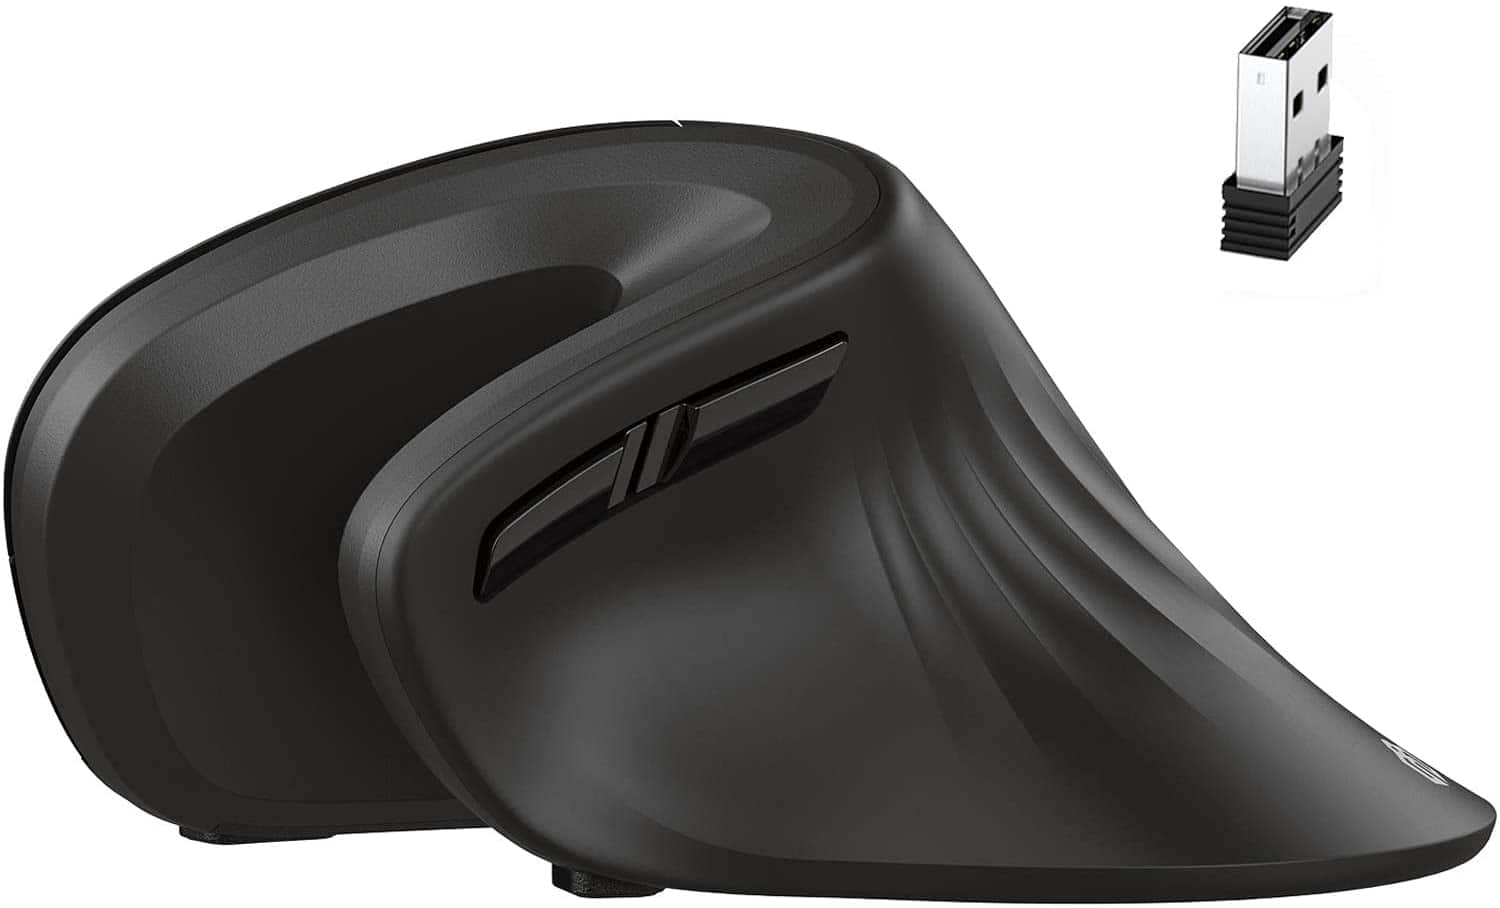 iClever Ergonomic Vertical Wireless Mouse $12.71